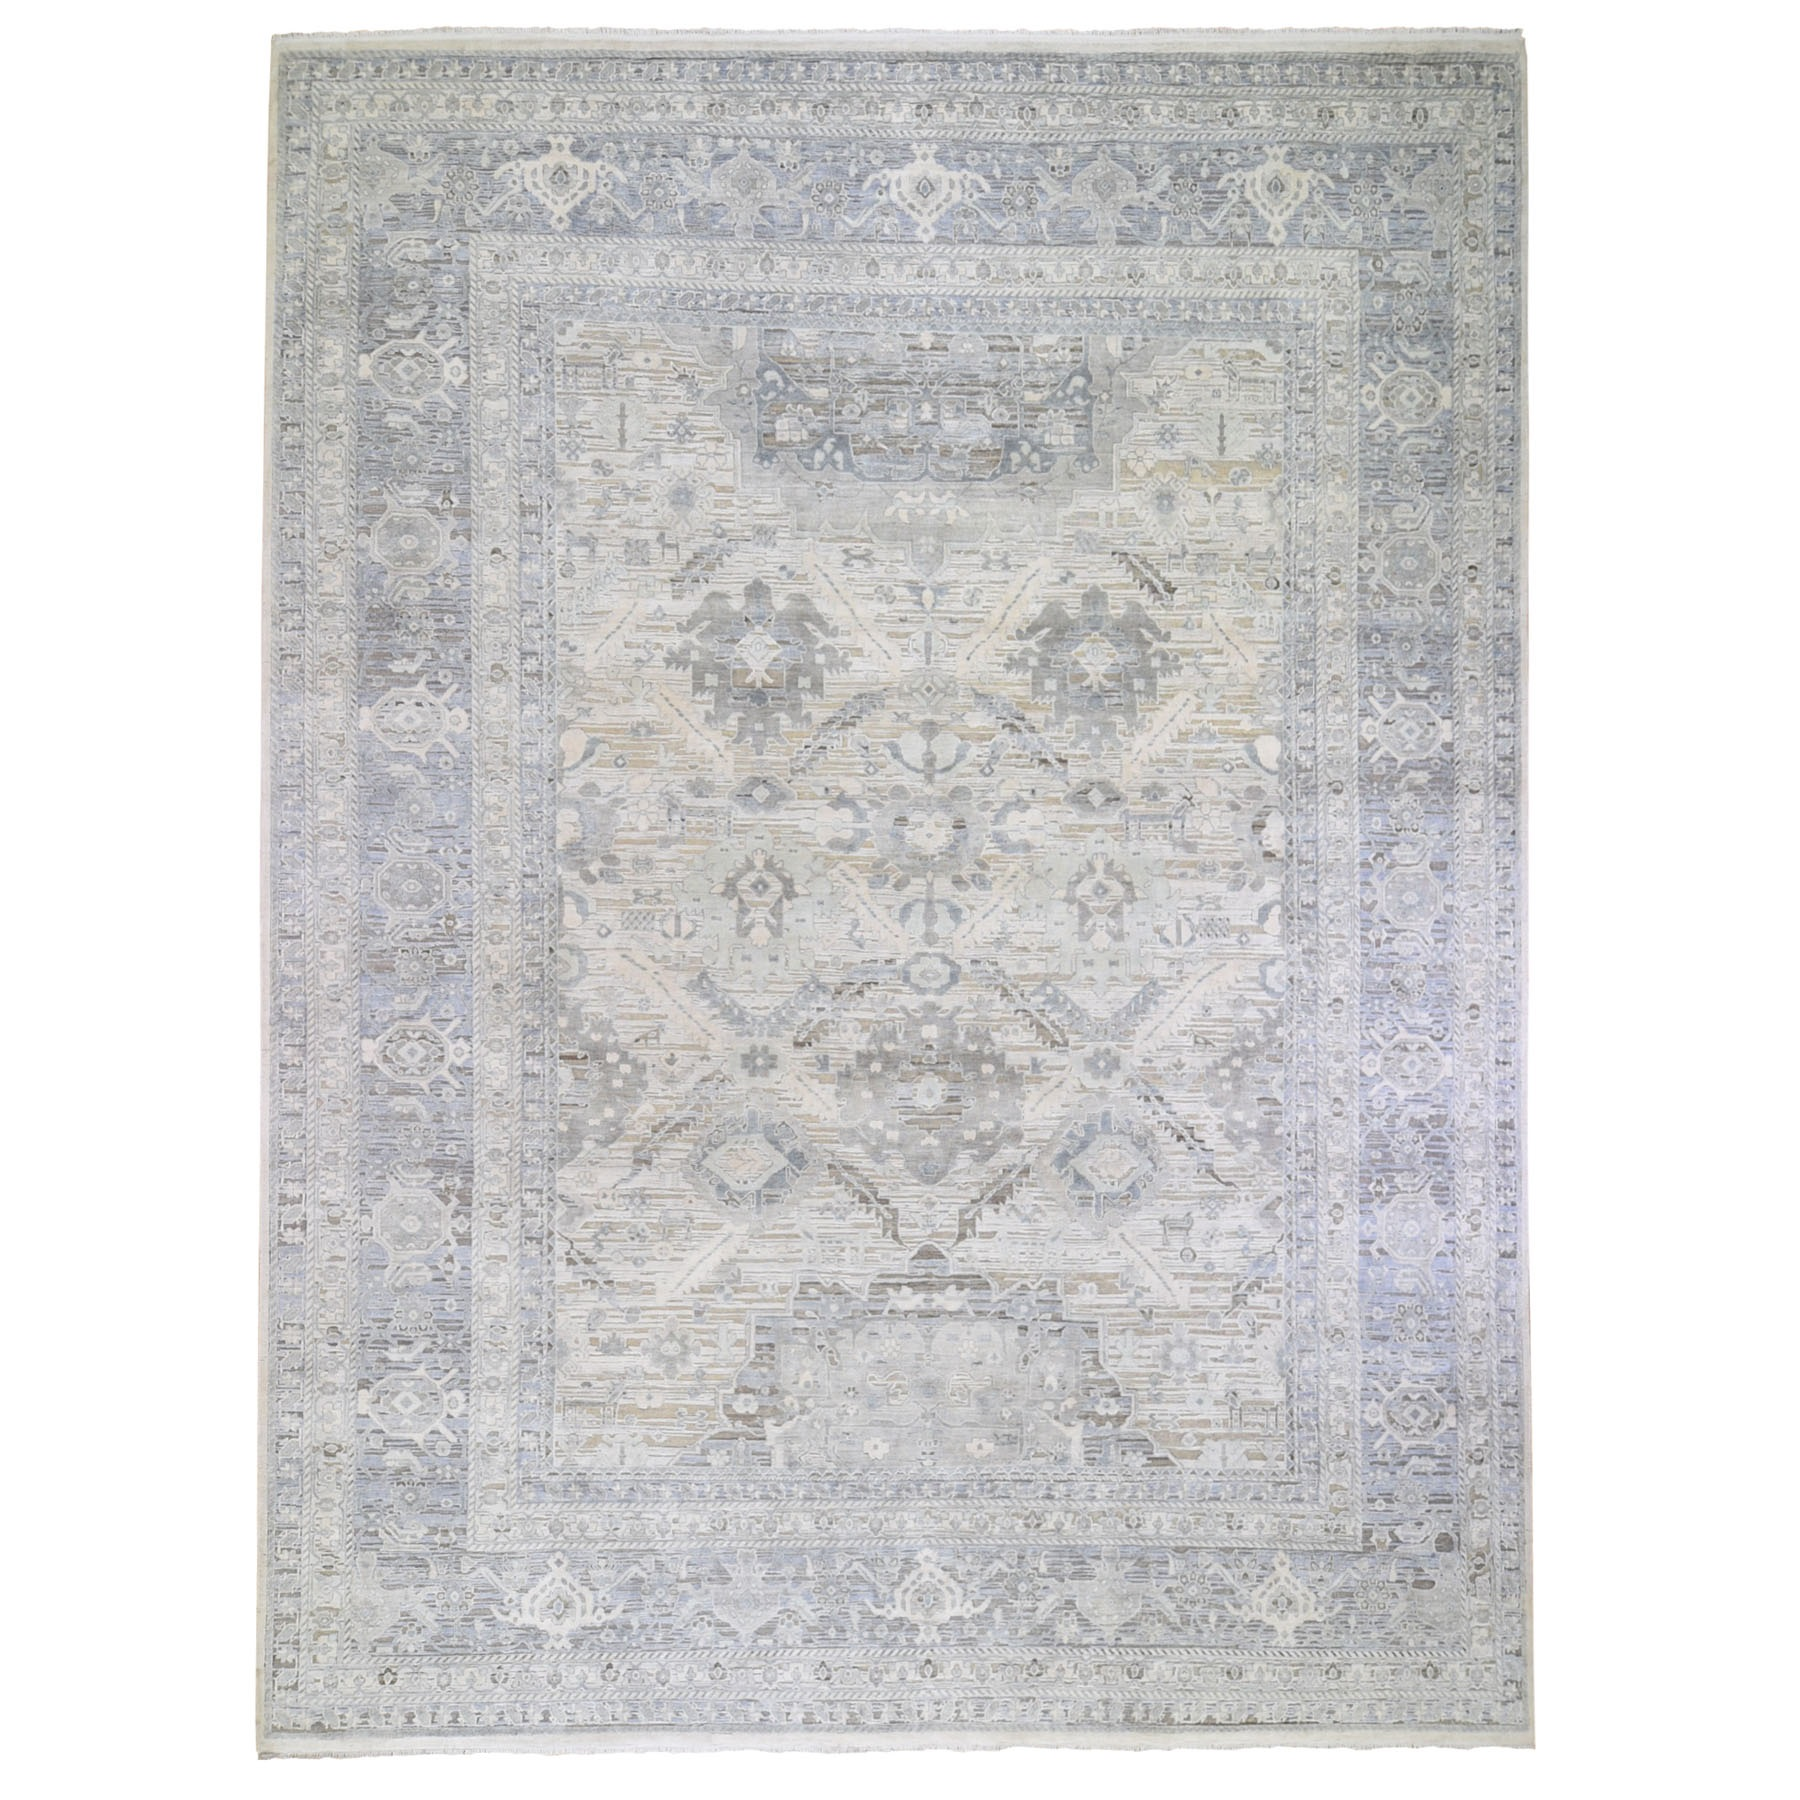 """11'10""""x15' Oversized Ivory Pure Silk and Textured Wool Oushak with Geometric Motif Hand Knotted Oriental Rug"""